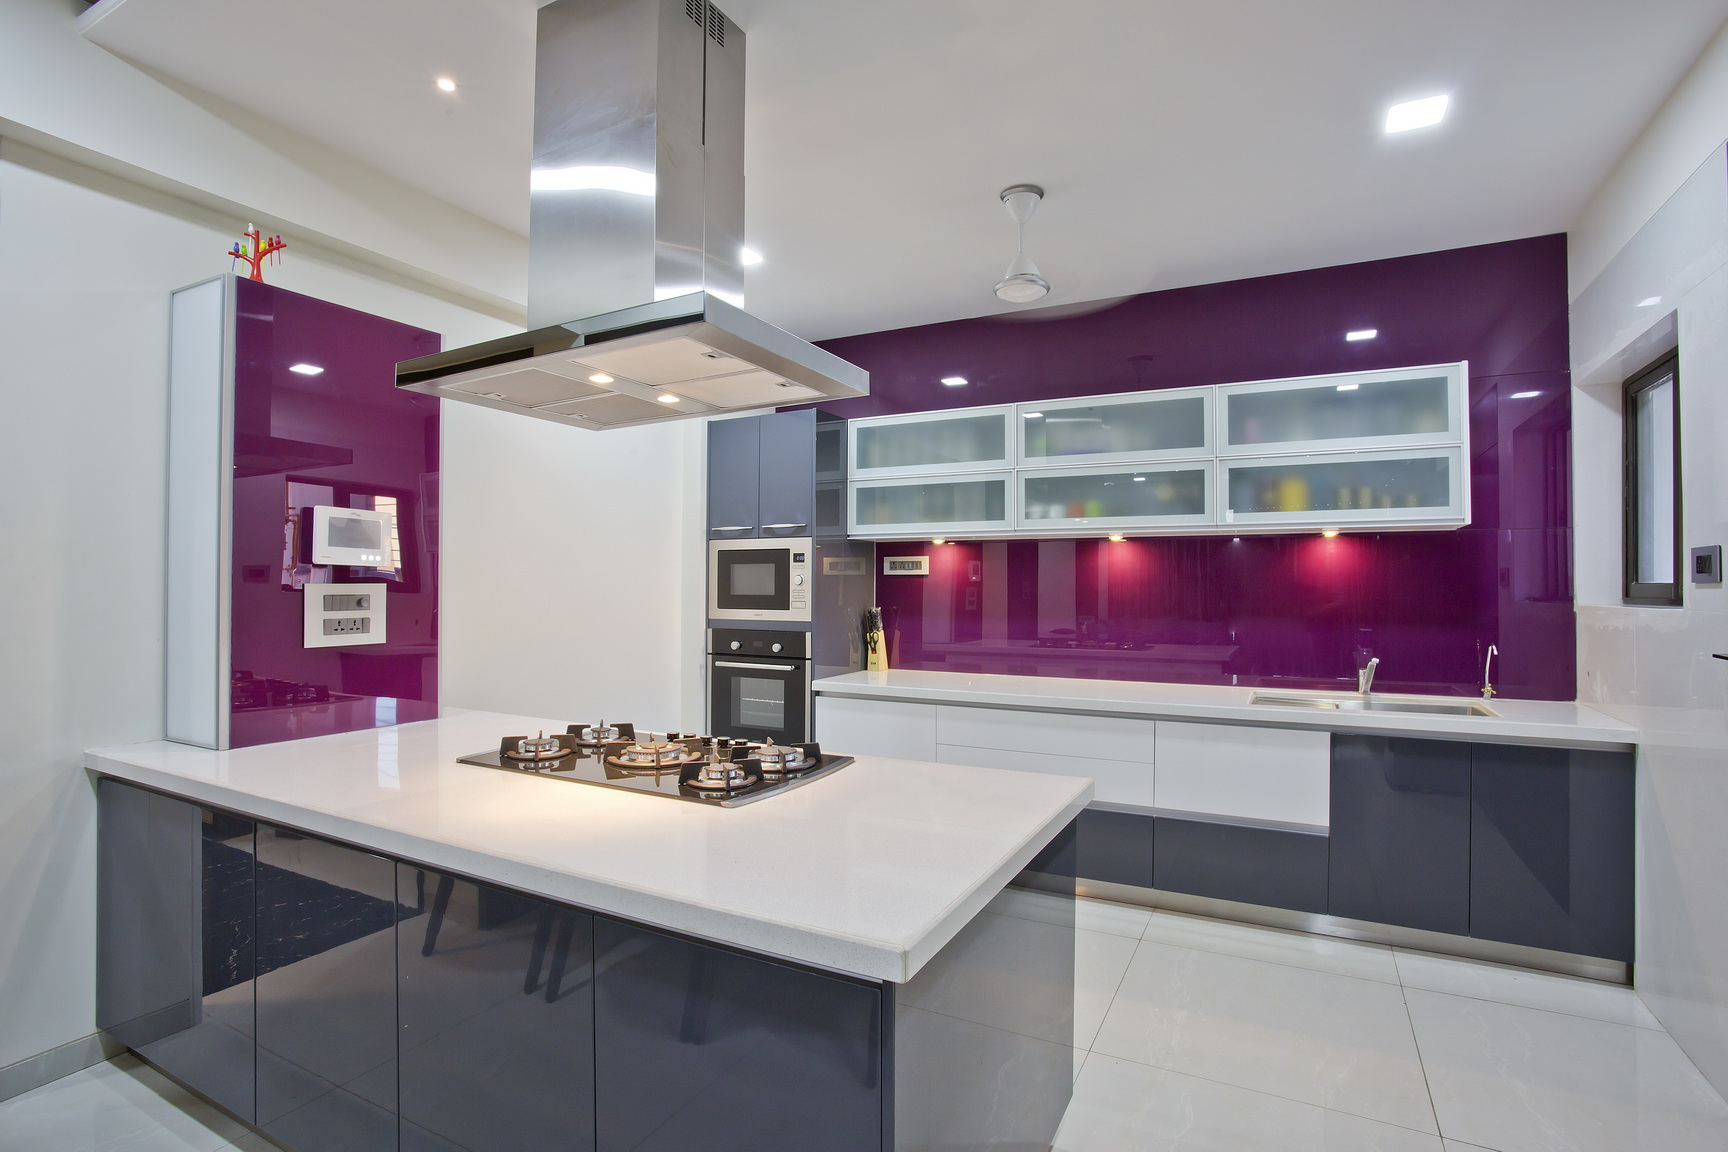 7 Things to Know Before Installing your Modular Kitchen